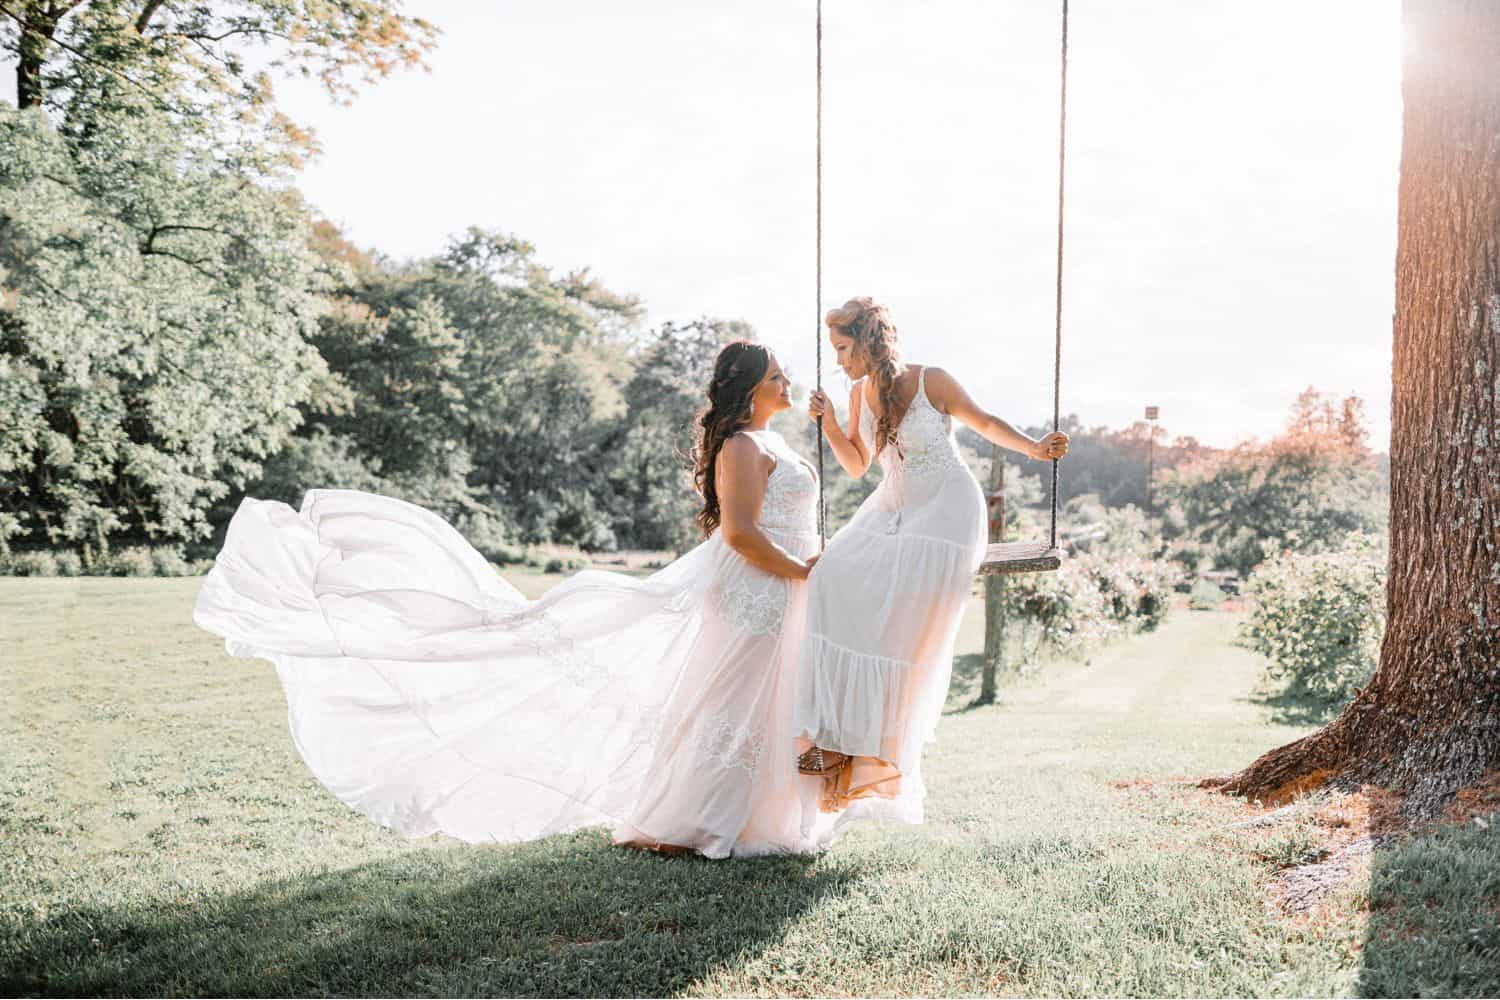 An outdoor wedding portrait of two brides on a swing